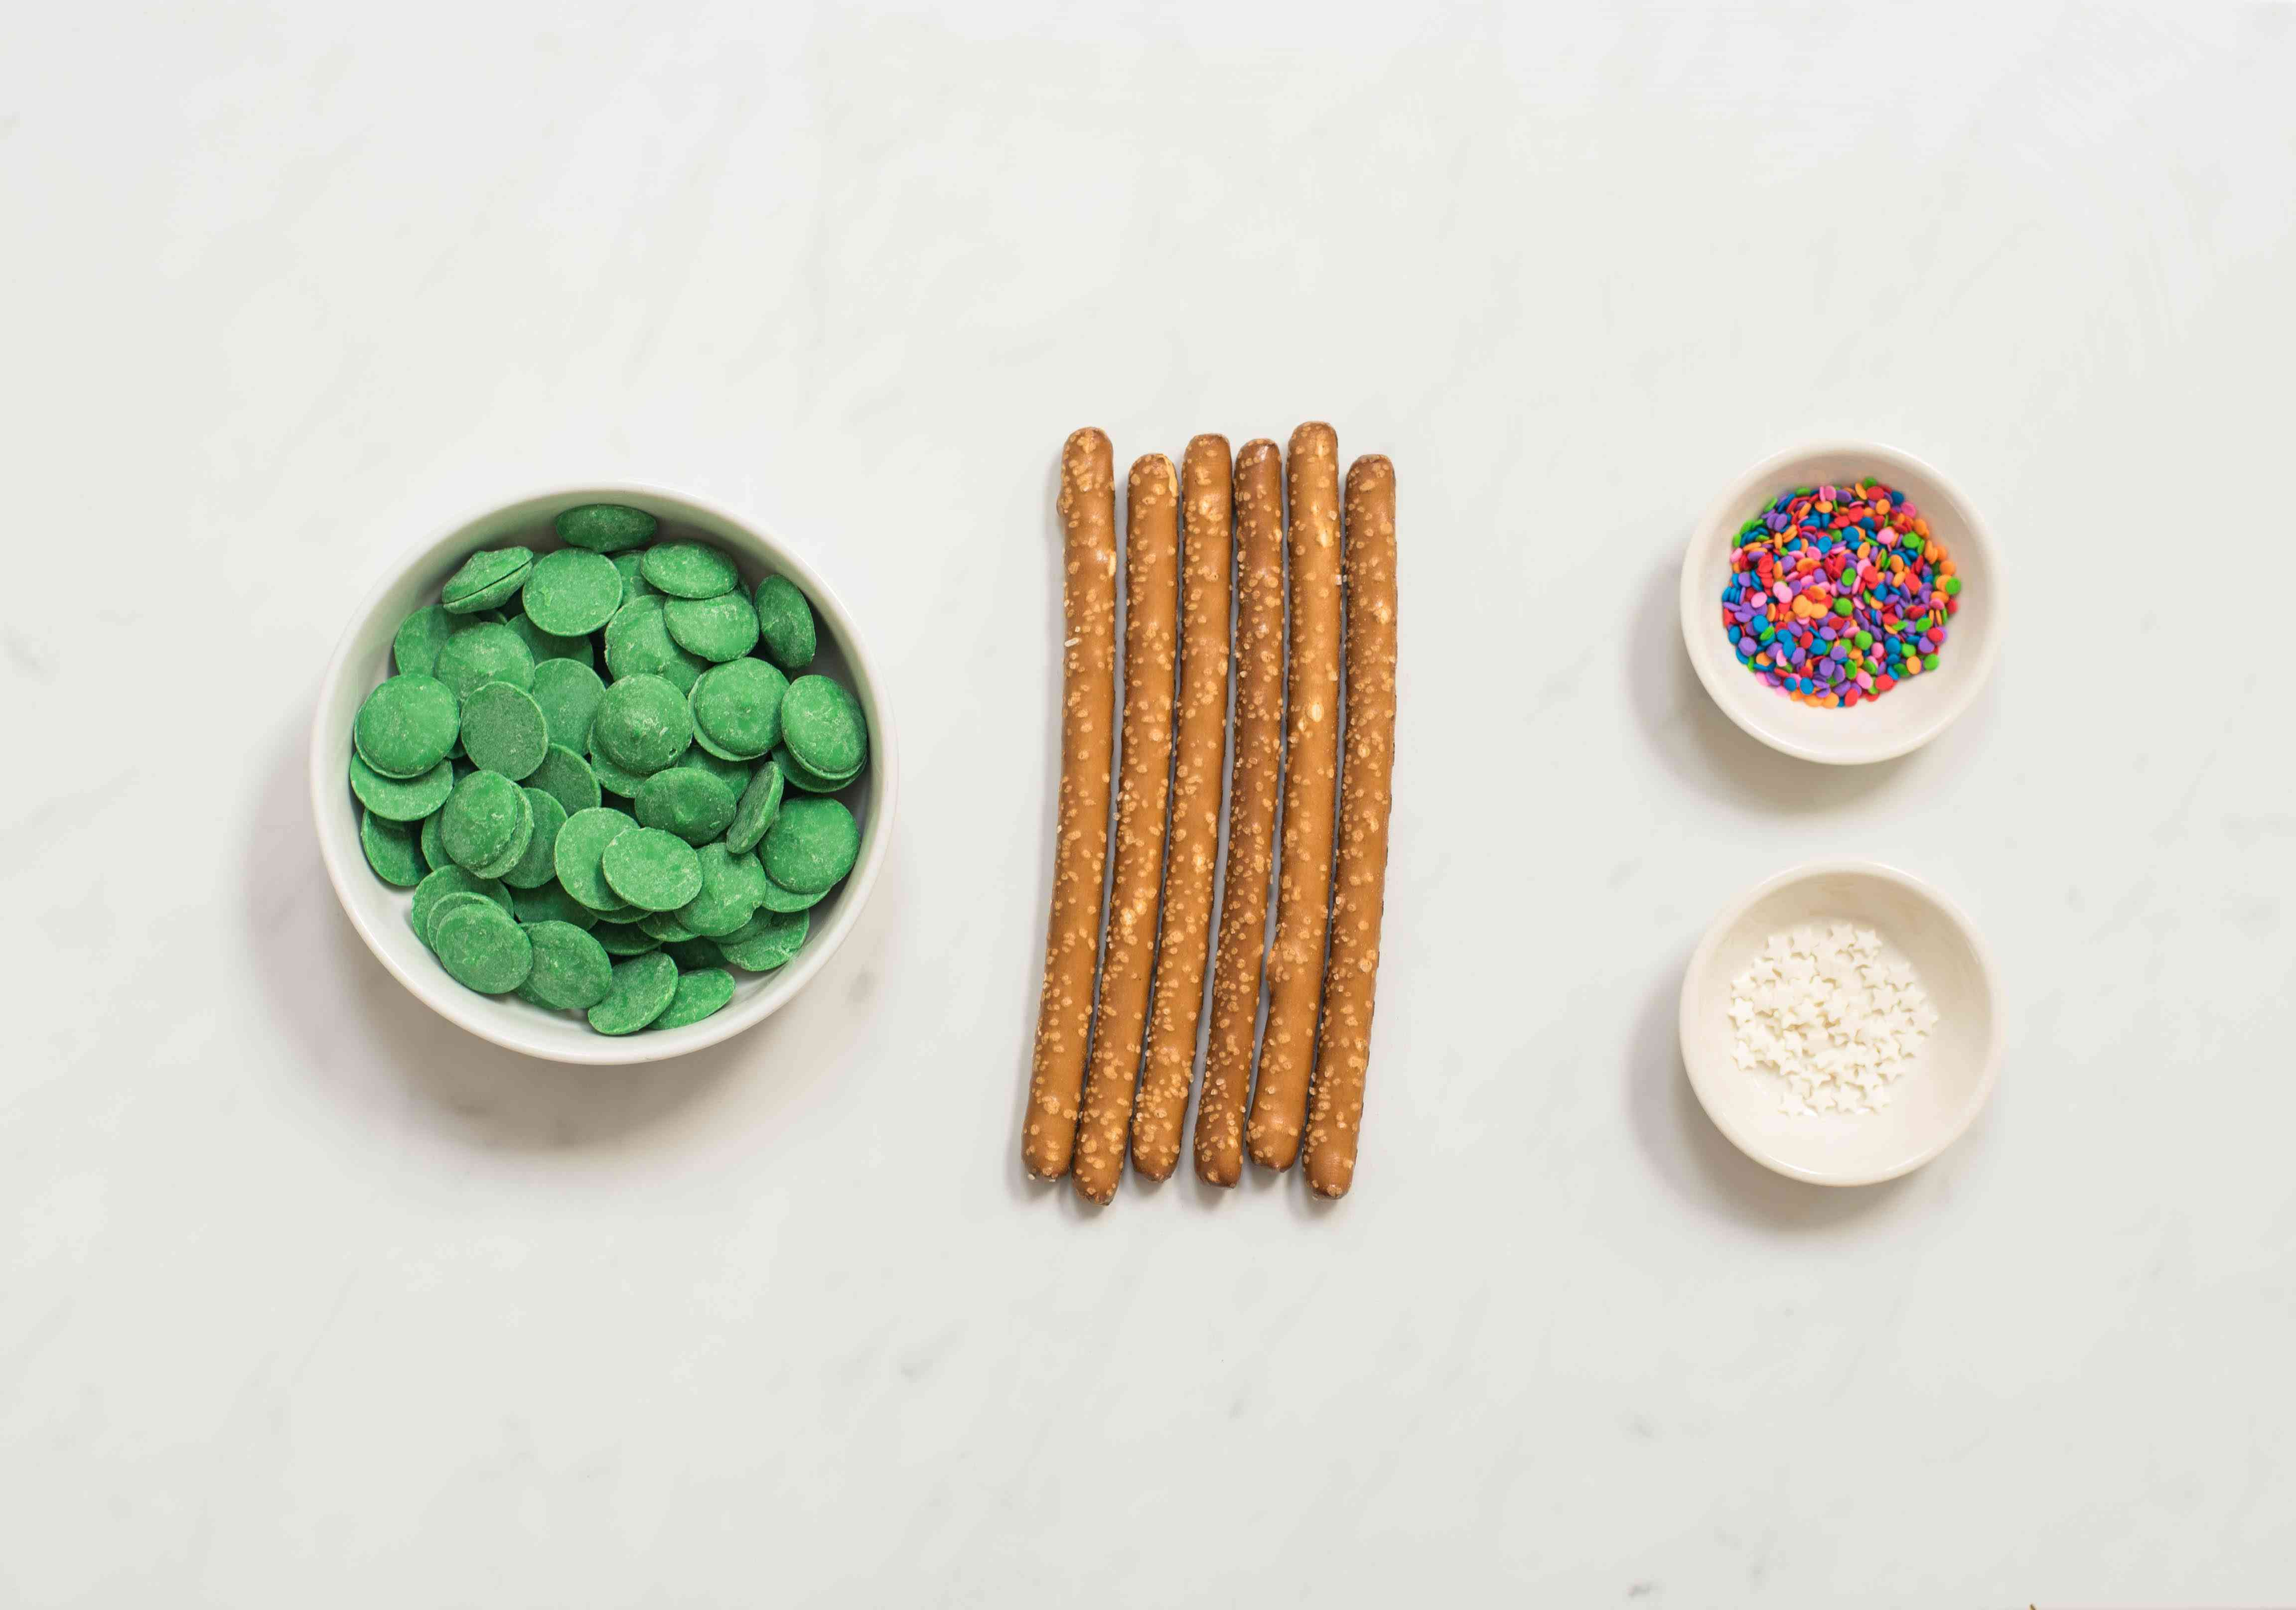 Ingredients for Christmas tree pretzels rods